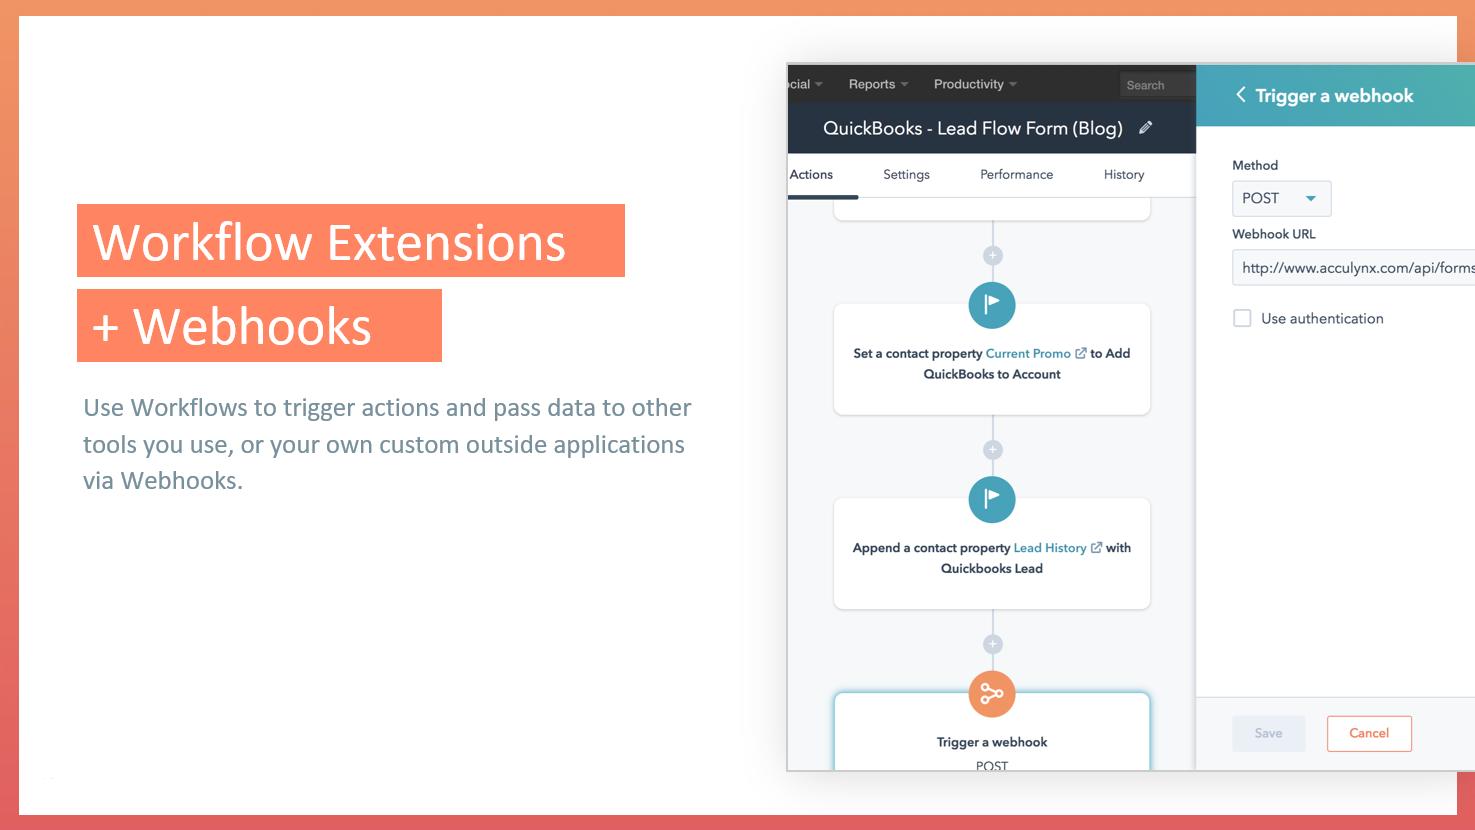 Workflow extensions